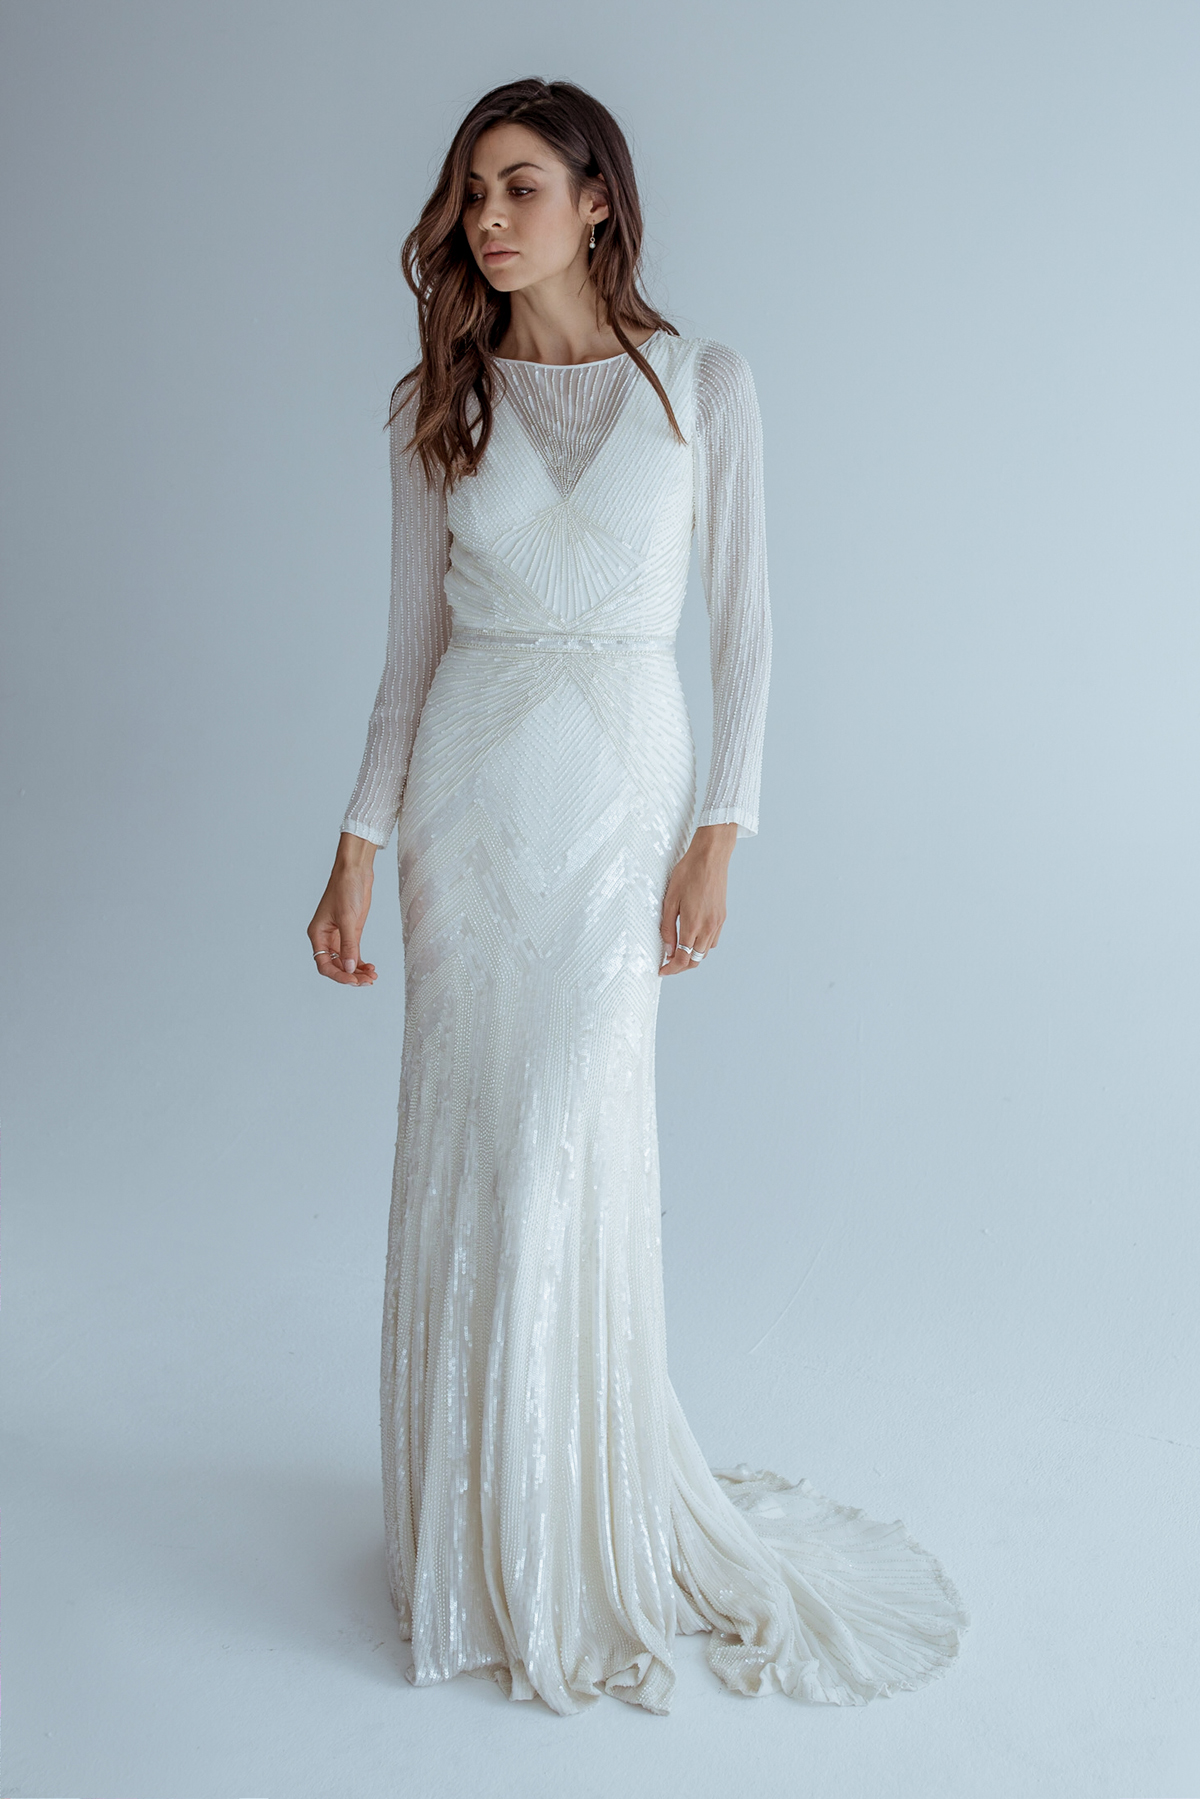 An Interview With Bridal Designer Karen Willis Holmes | Love My ...